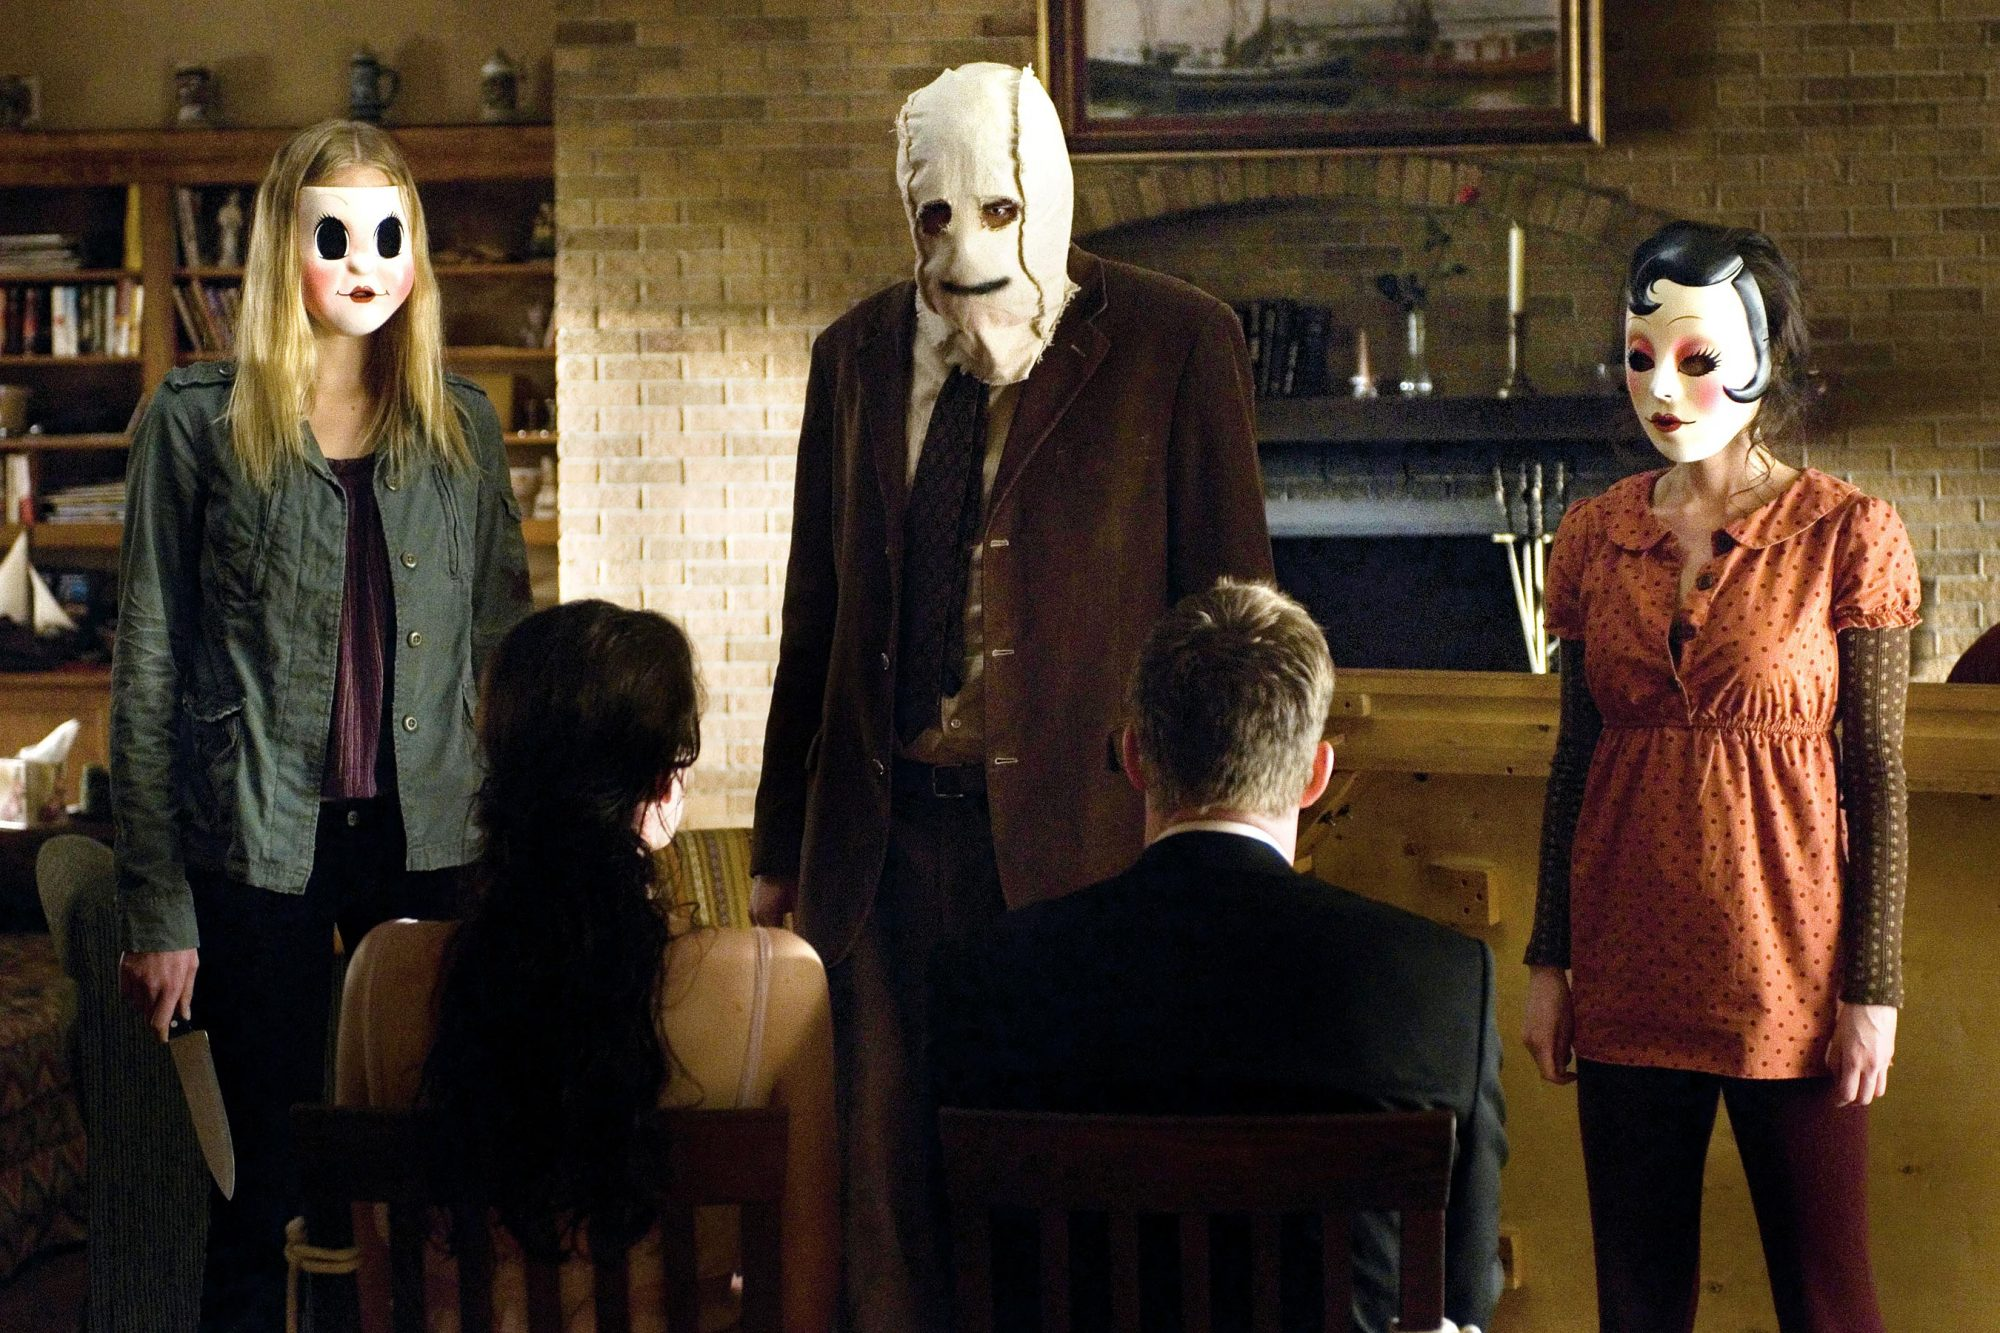 Film Title: The Strangers